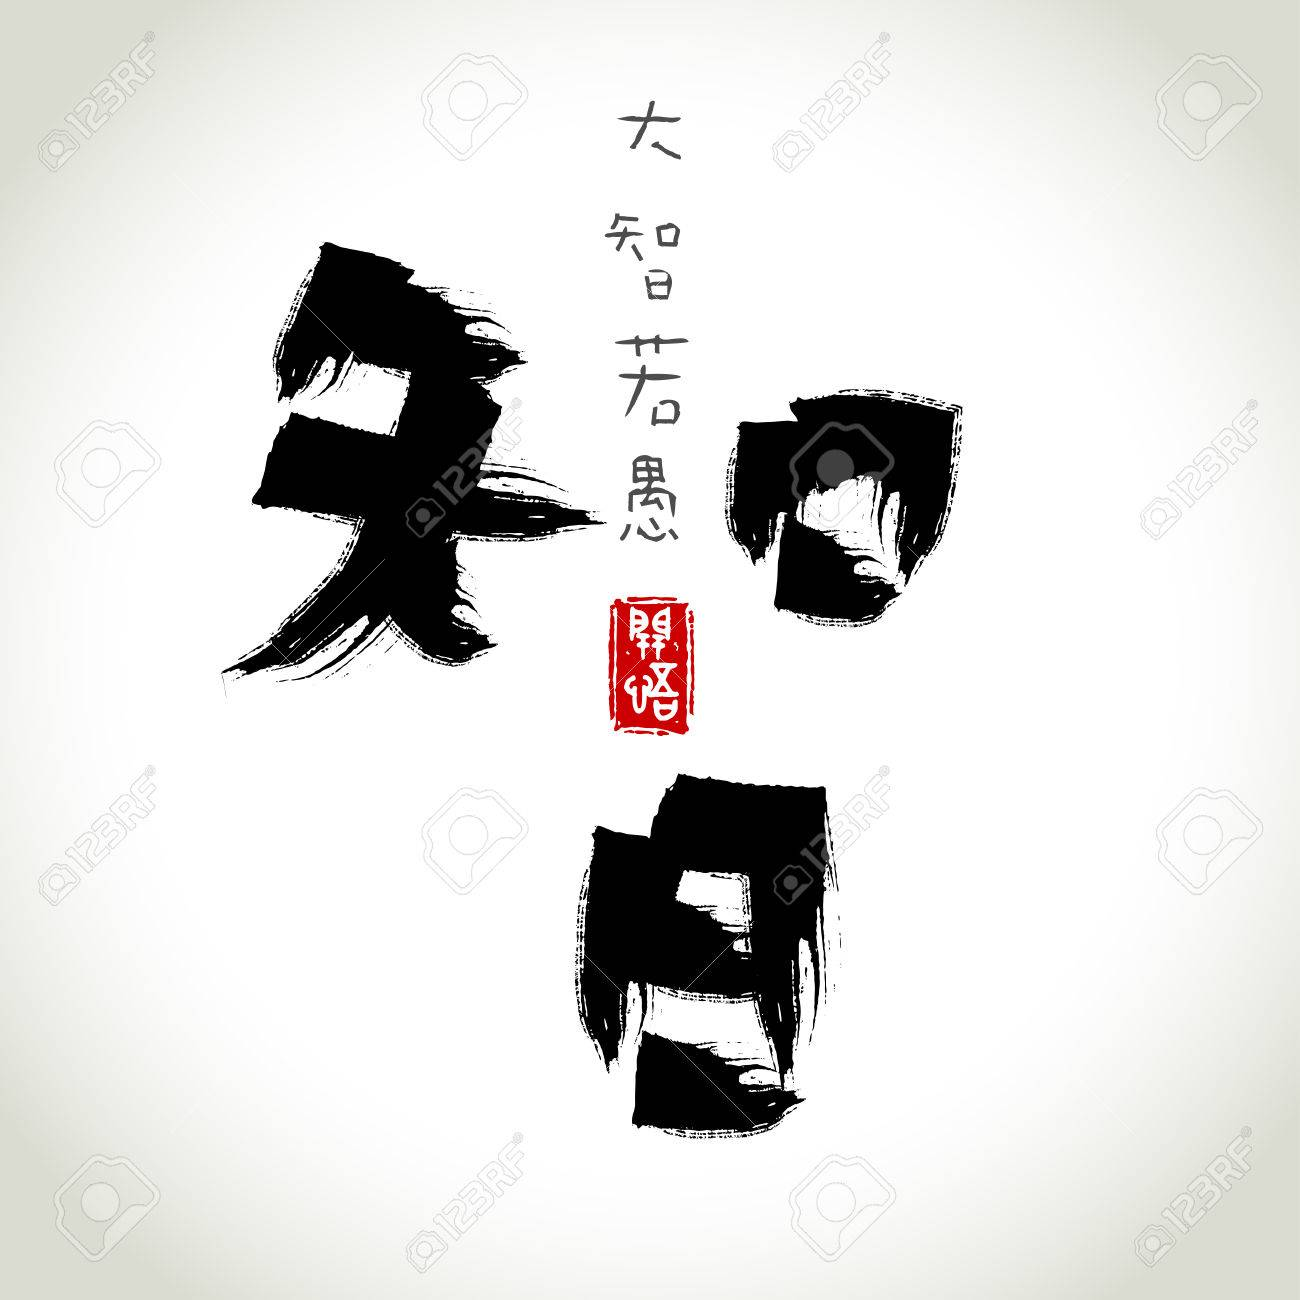 Chinese penmanship calligraphy zh meaning is wisdomknowledge chinese penmanship calligraphy zh meaning is wisdomknowledge chinese seal meaning realization chinese proverb buycottarizona Images